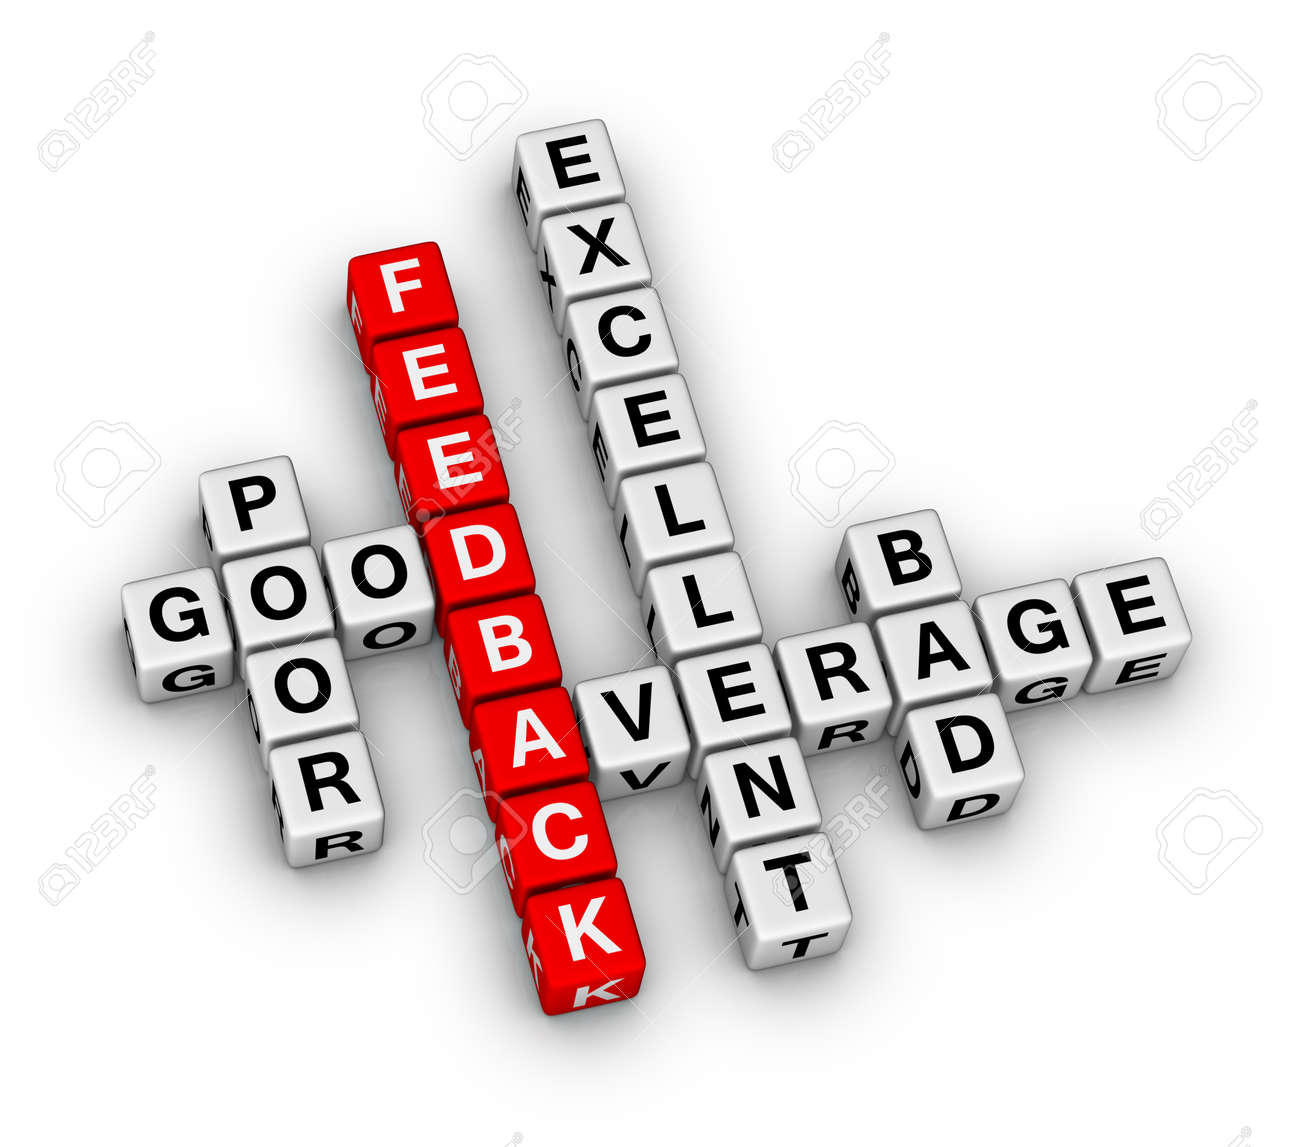 feedback form cubes crossword puzzle Stock Photo - 27646044